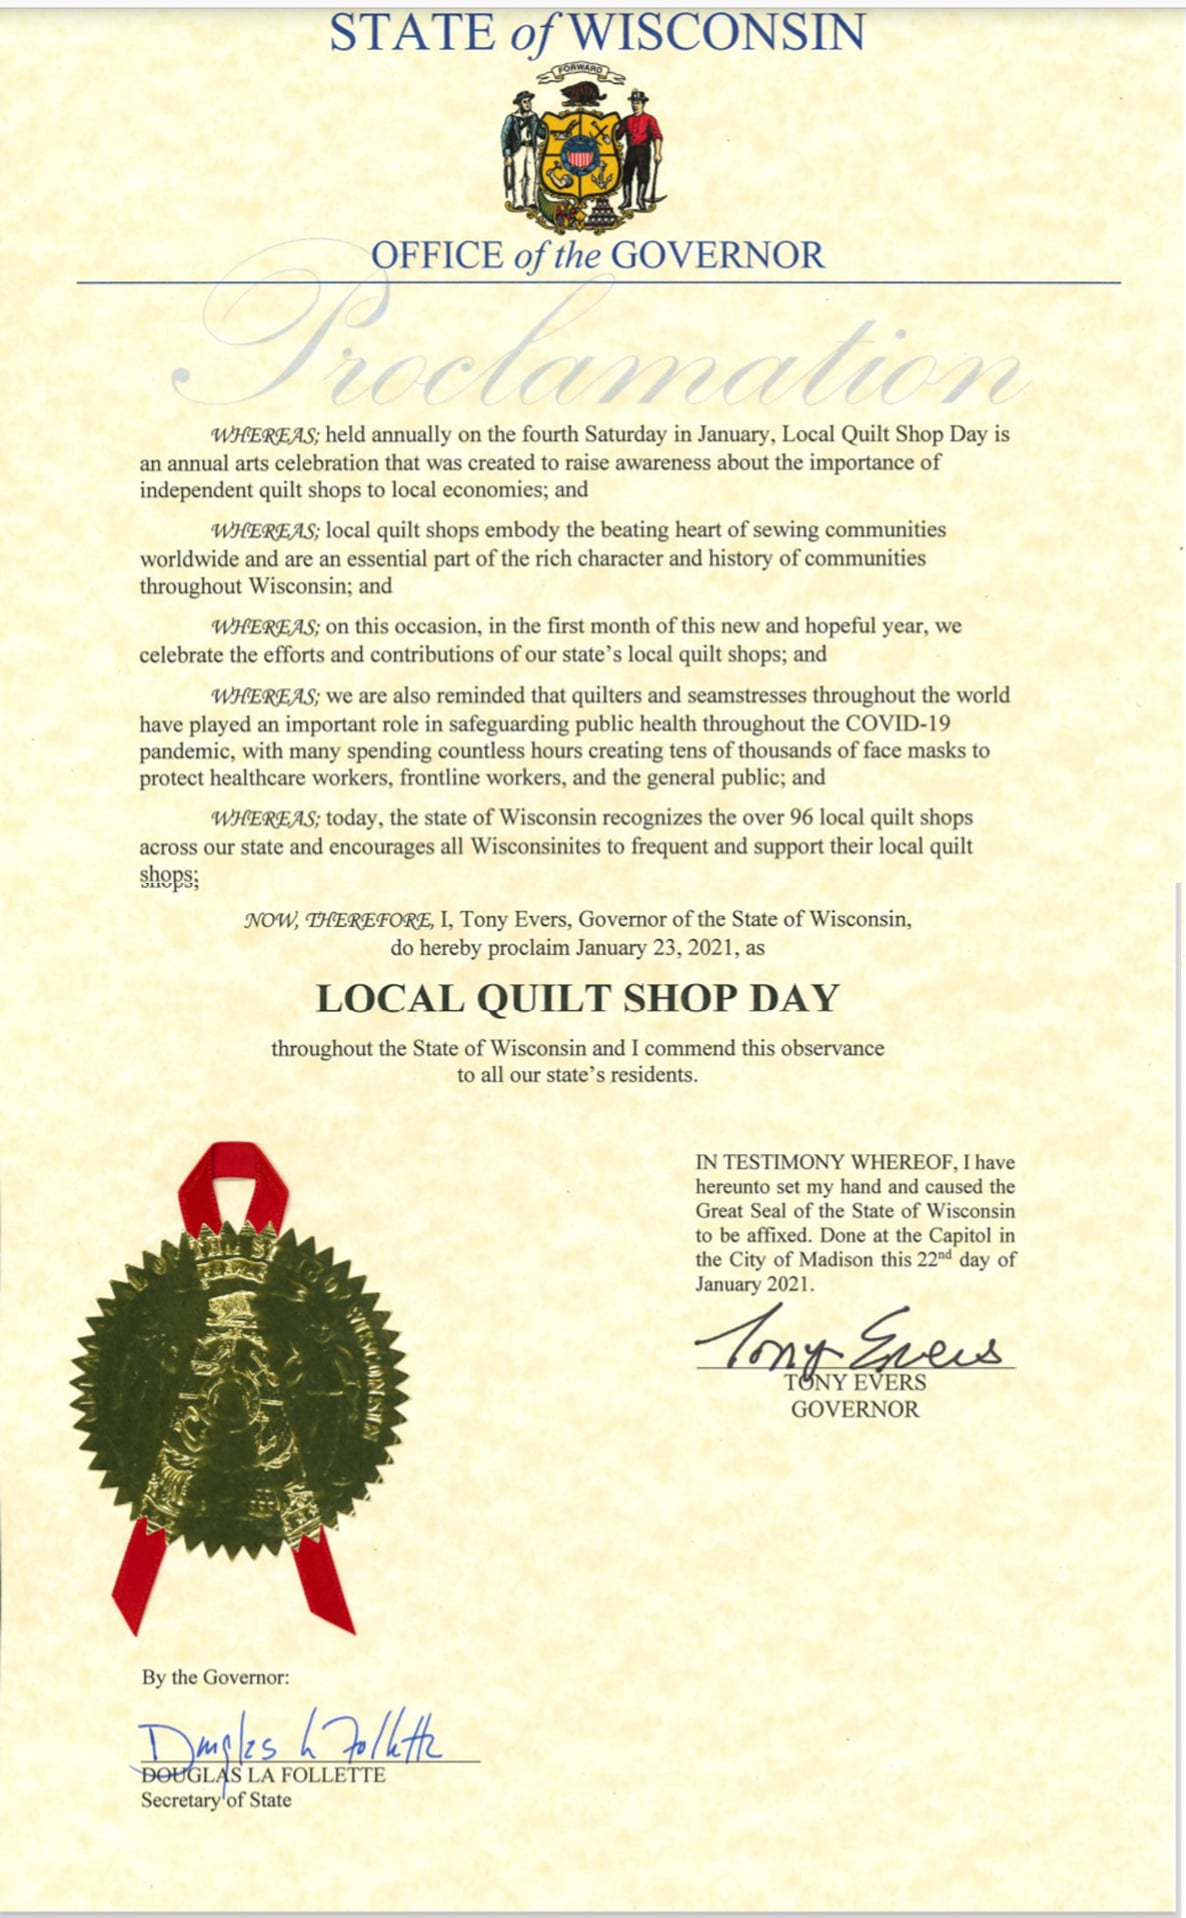 STATE OF WISCONSIN PROCLAIMS LOCAL QUILT SHOP DAY Saturday, January 23. 2021